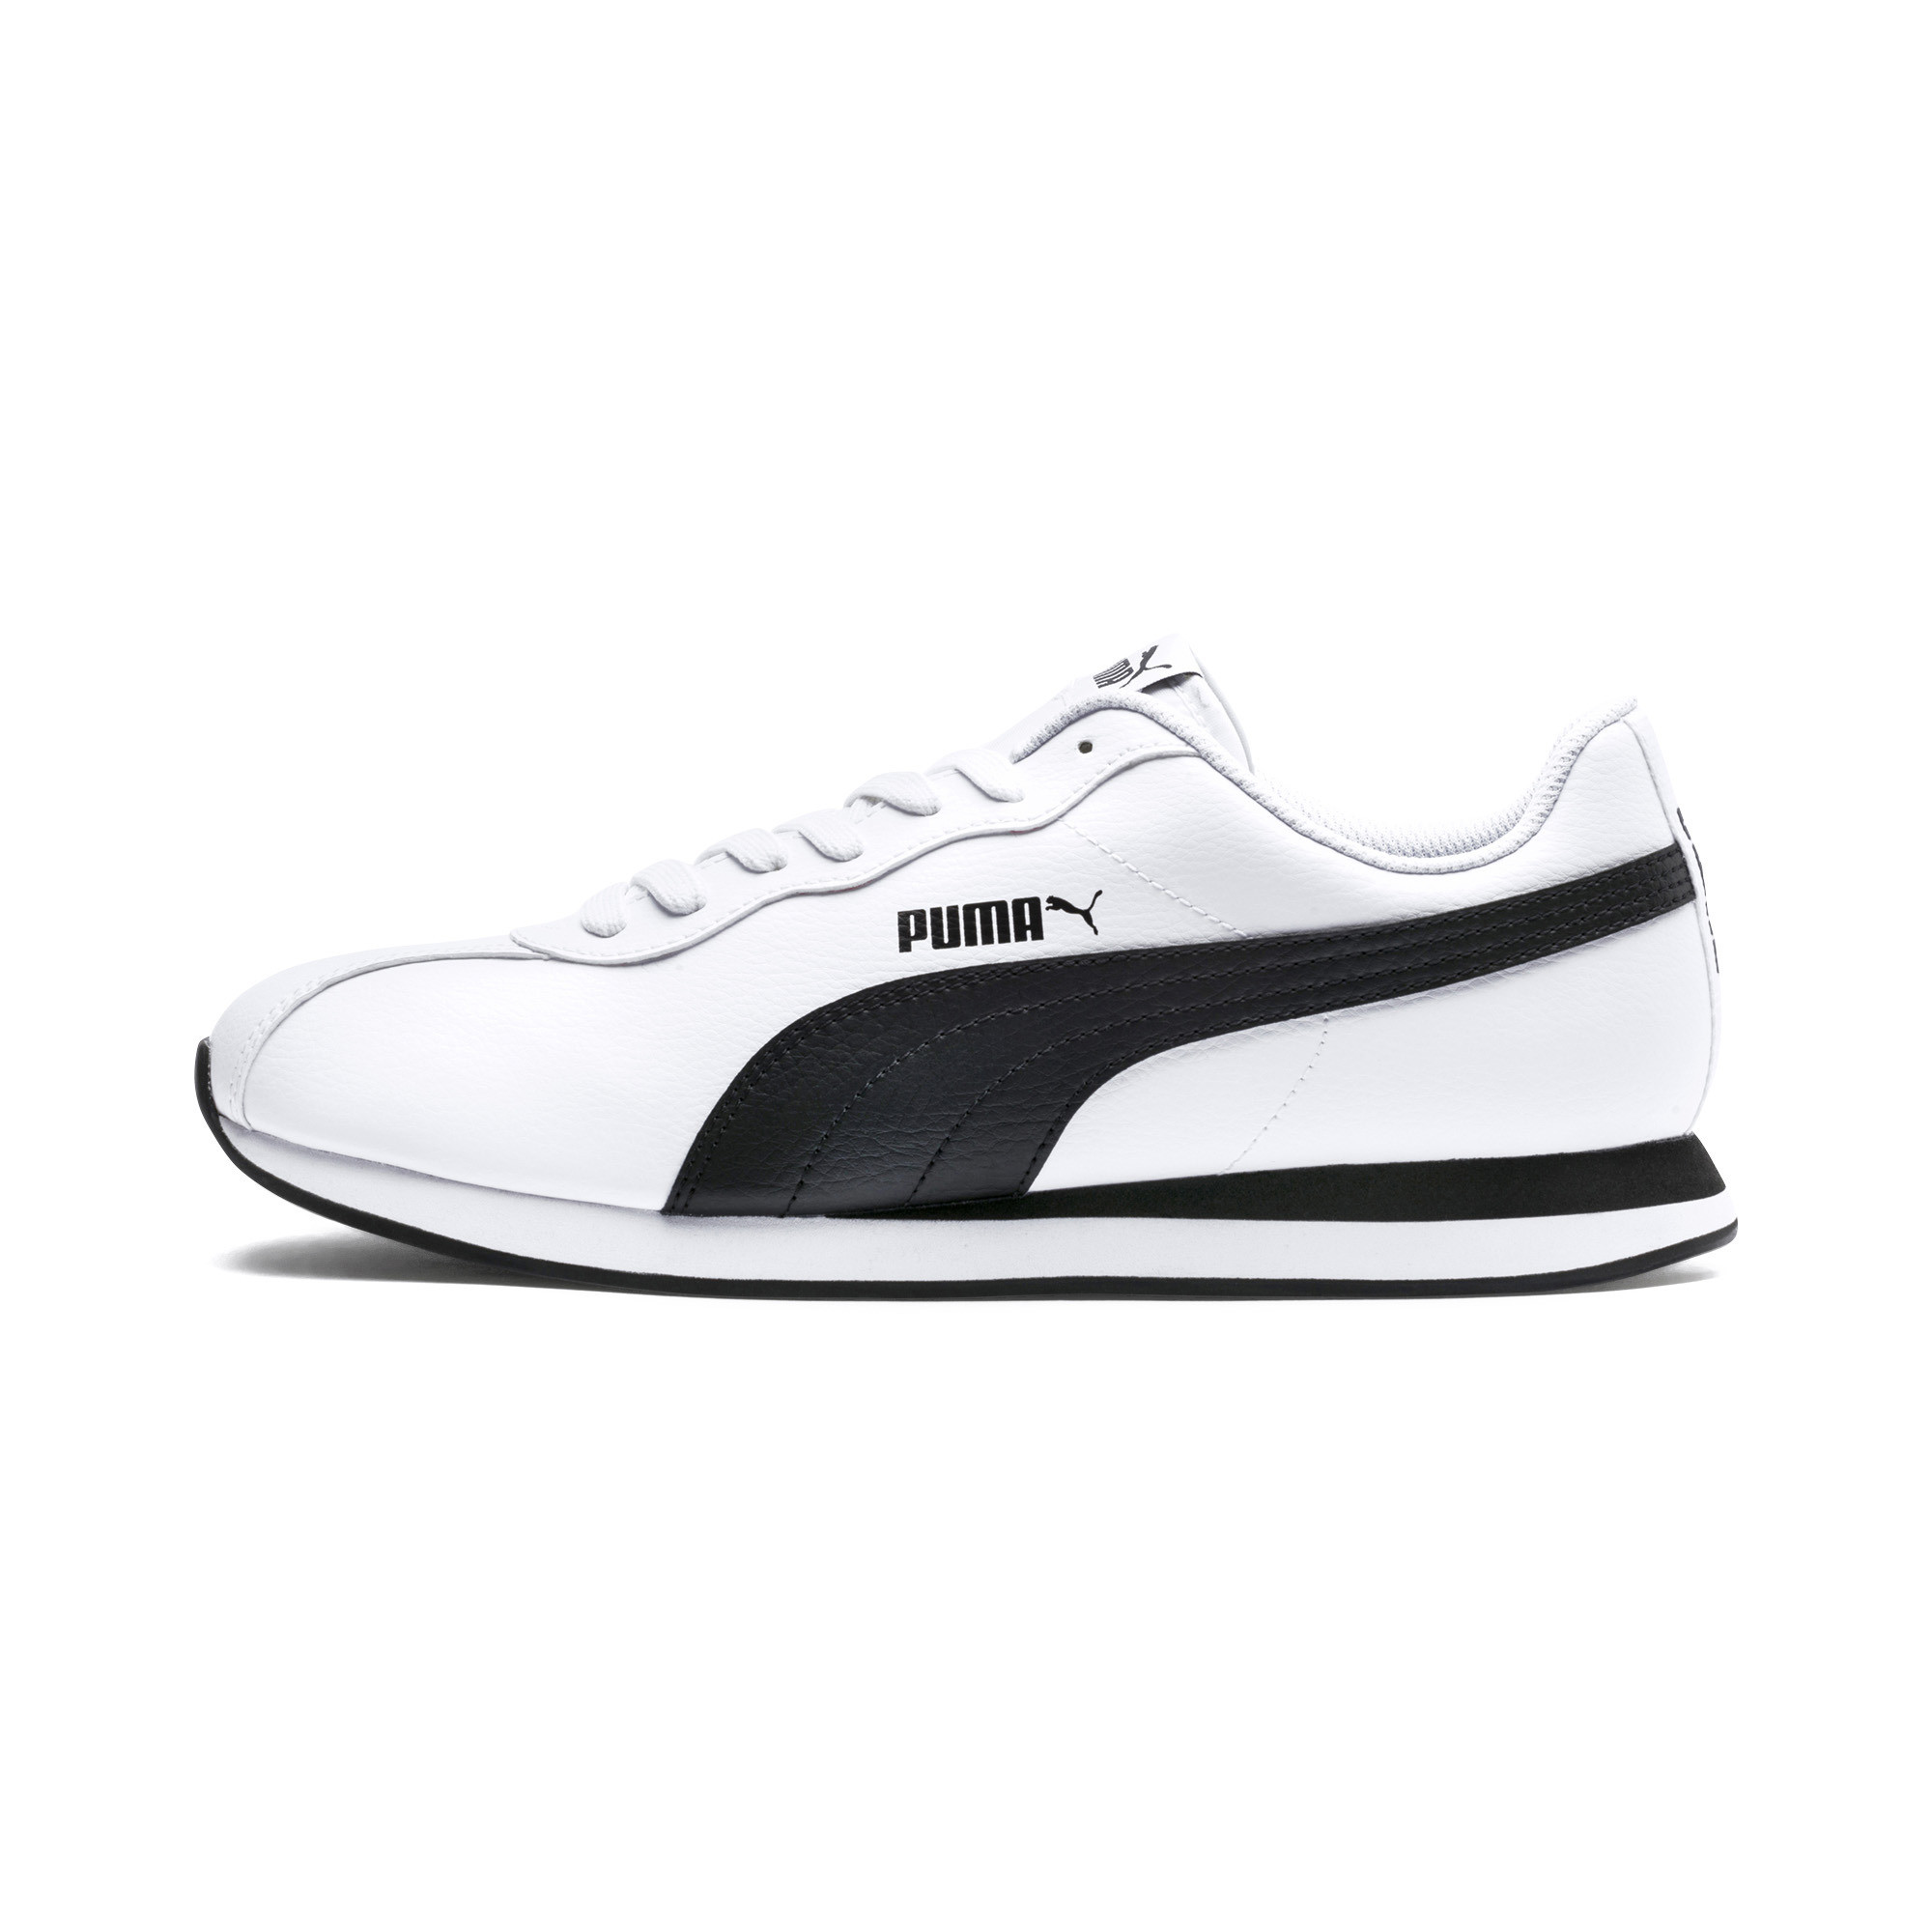 PUMA-Turin-II-Men-039-s-Sneakers-Men-Shoe-Basics thumbnail 14